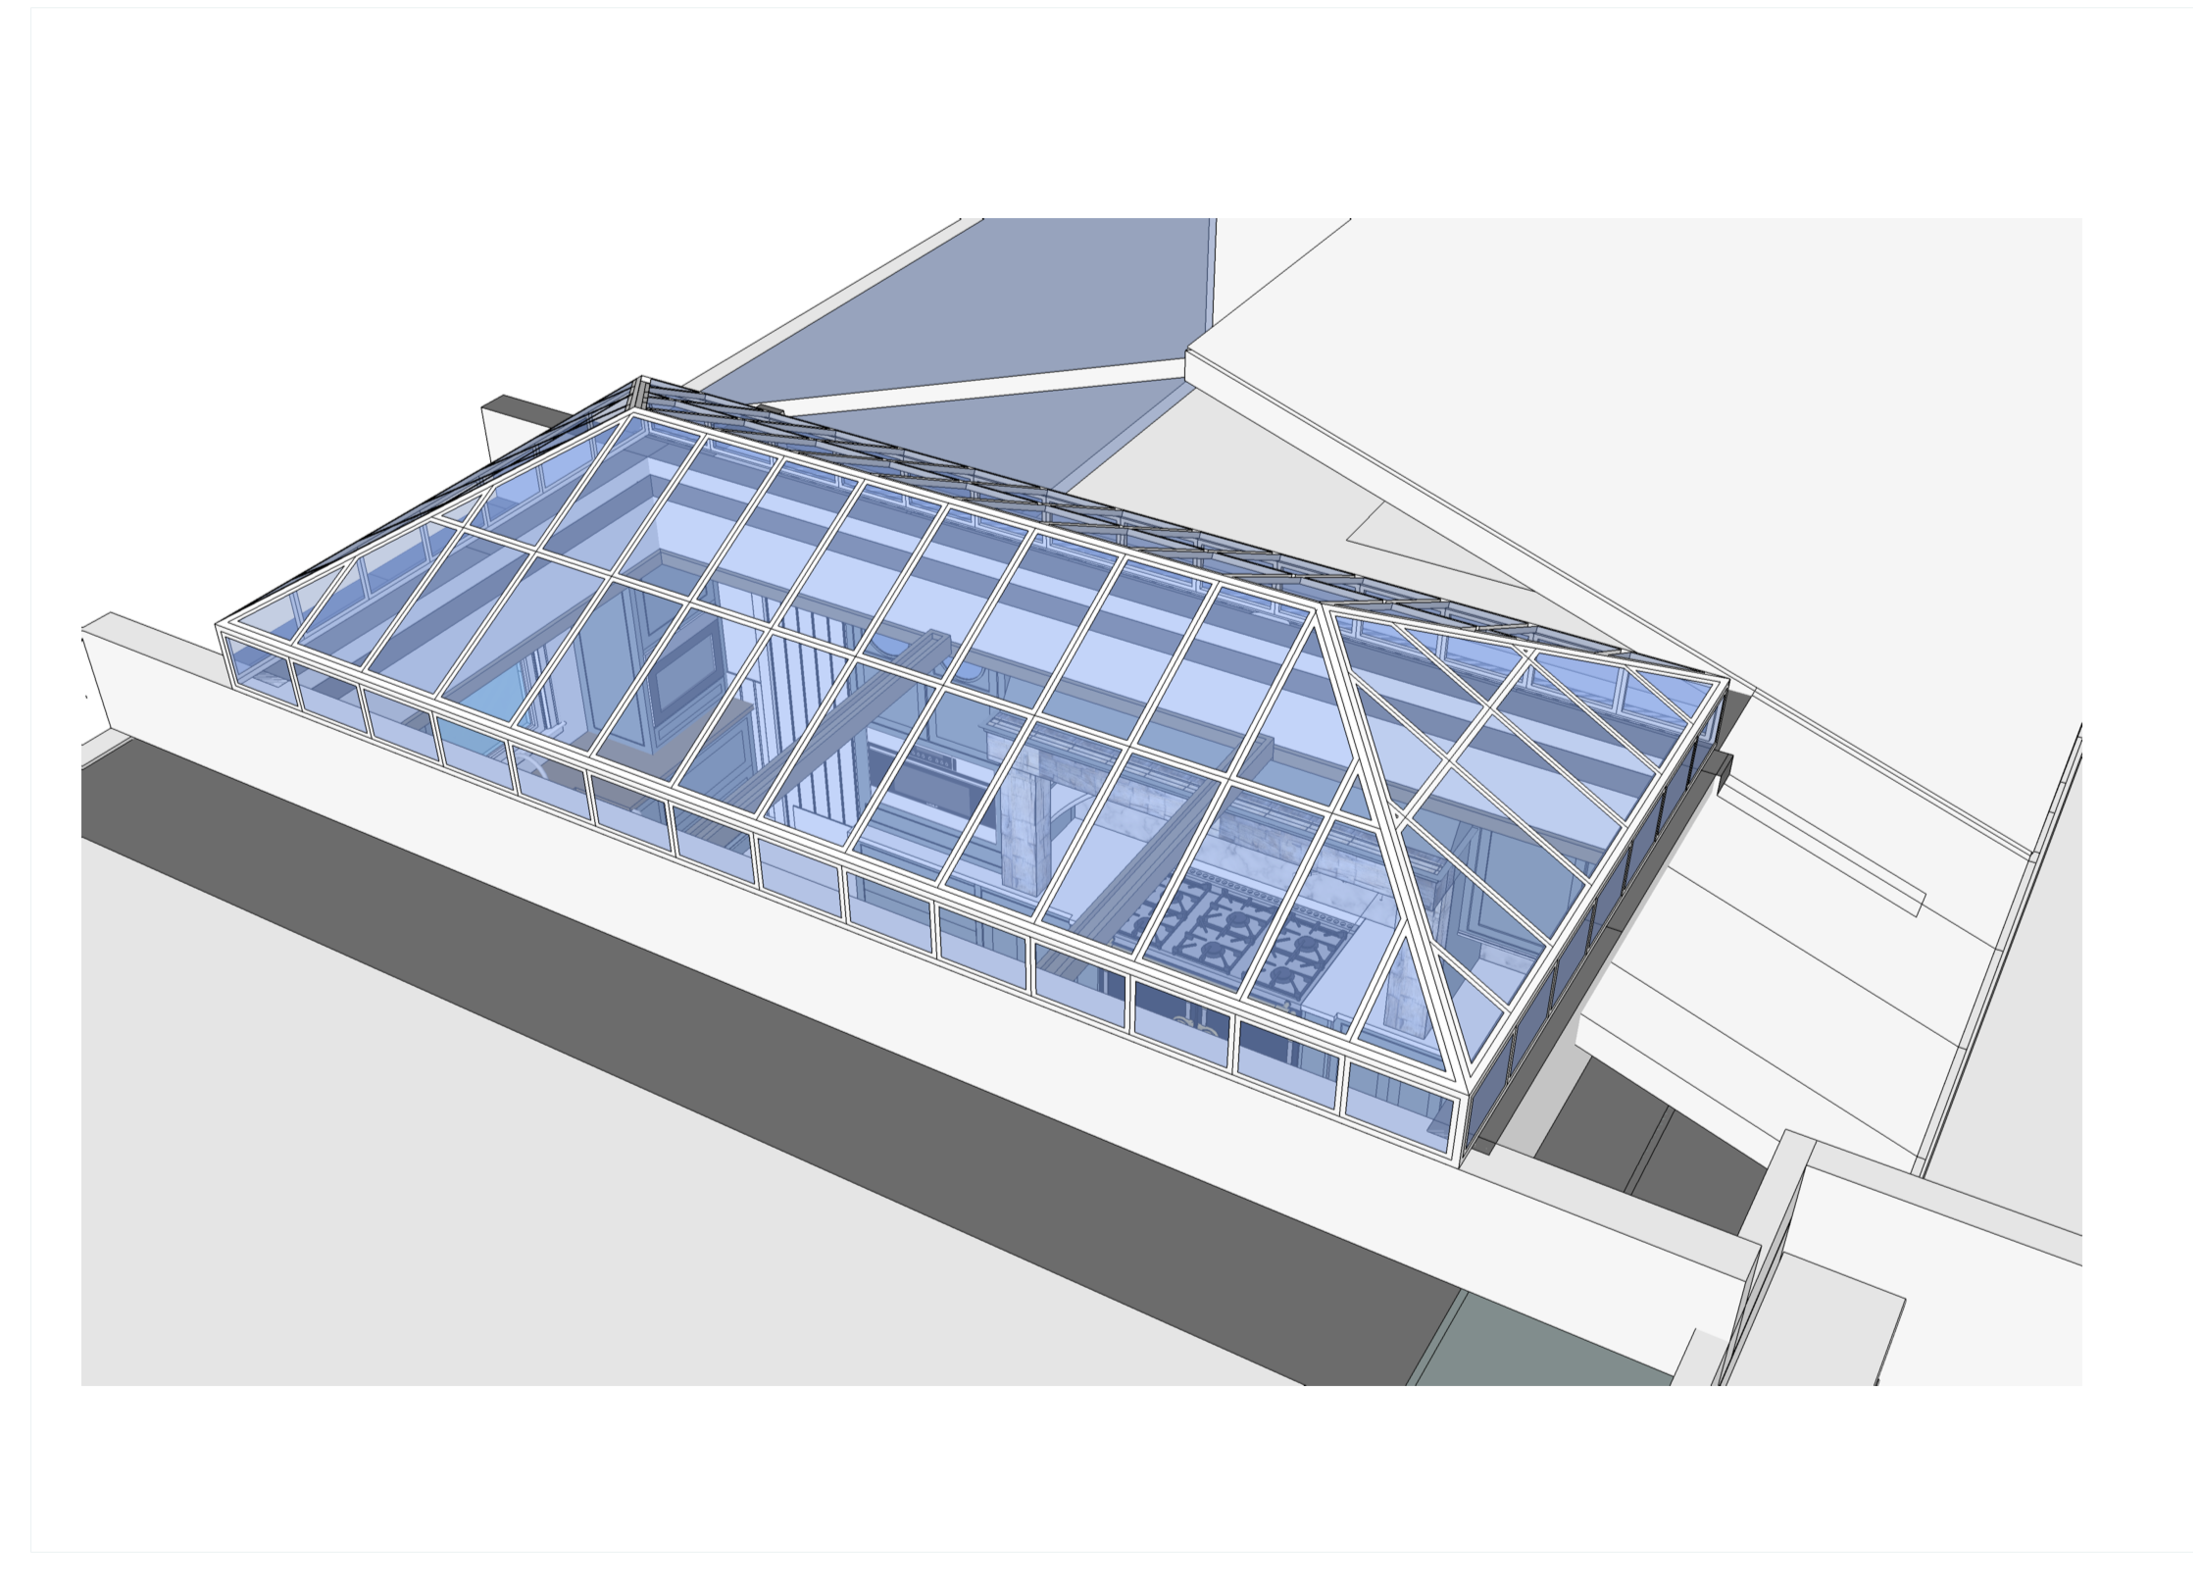 Conservatory Skylight under consideration